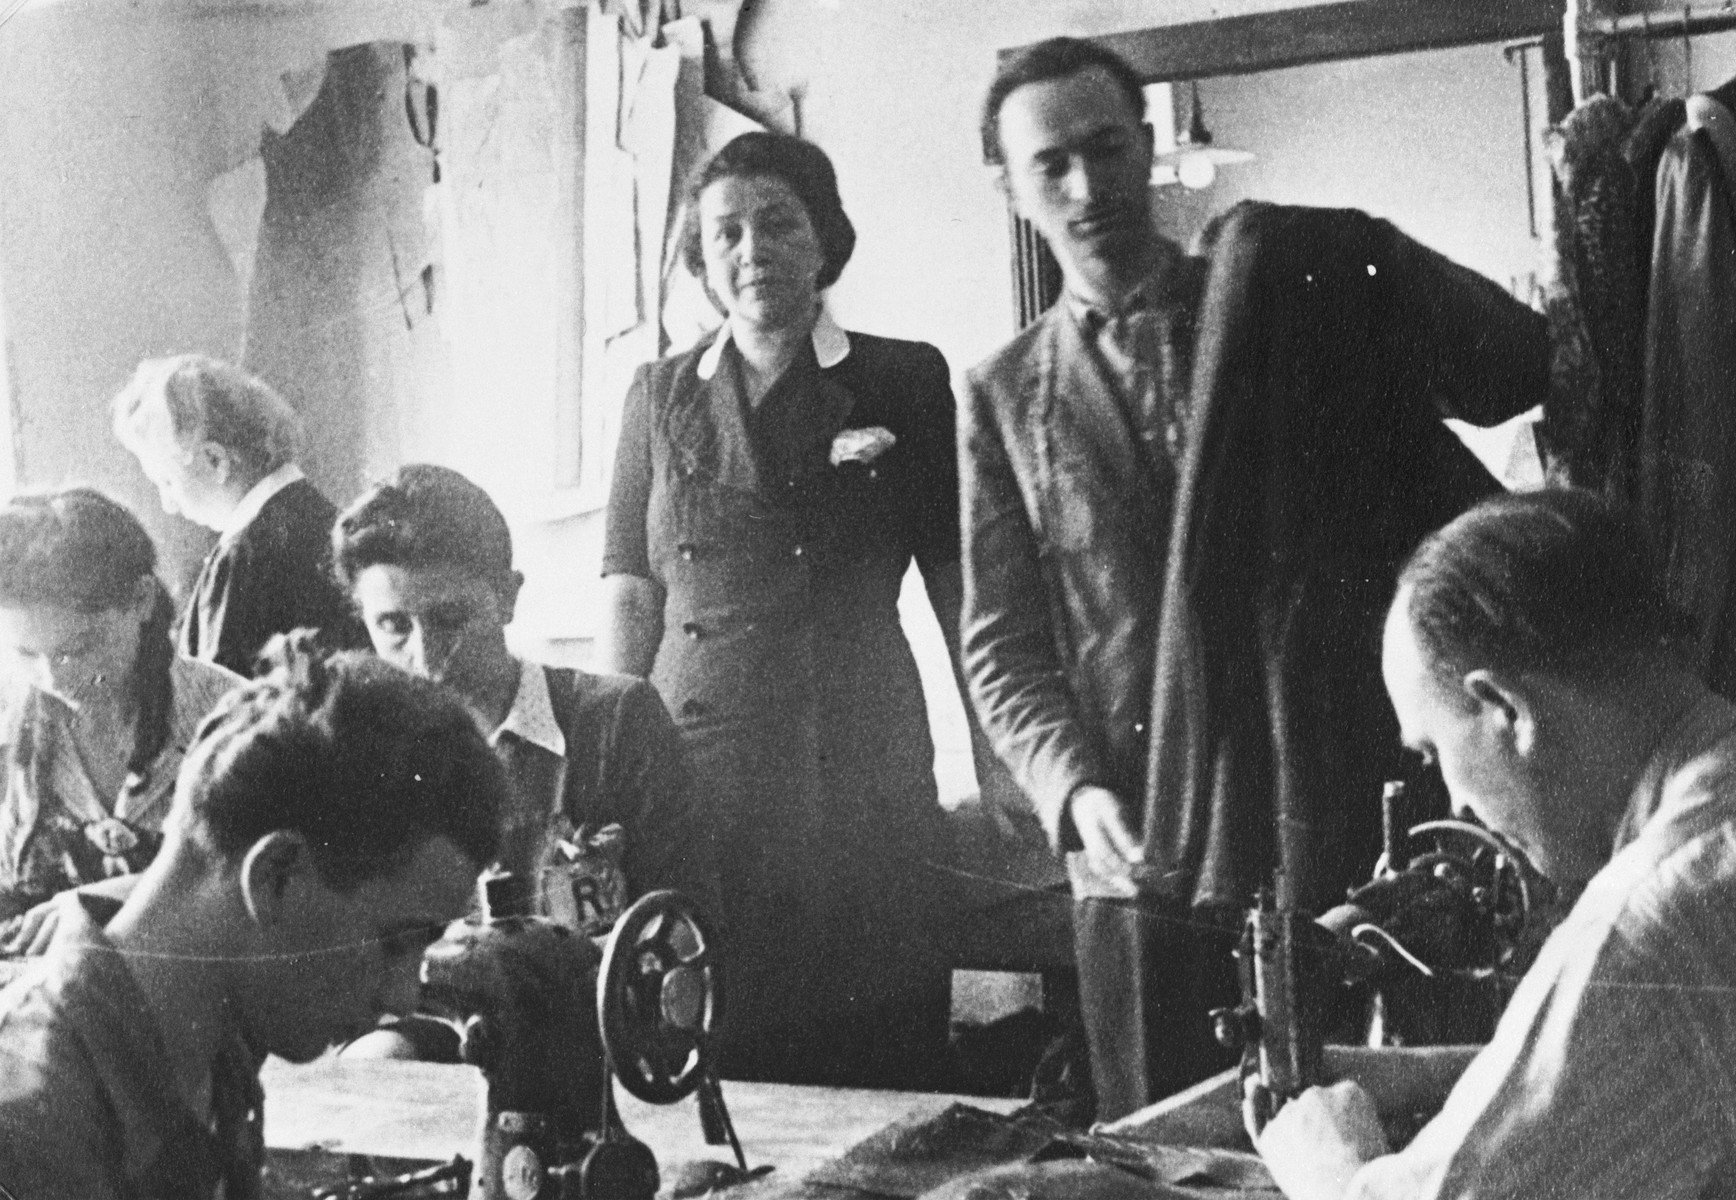 Employees work at sewing machines in the Julius Madritsch clothing workshop.  Bronislaw Eichenholz is seated in the front left.  Behind him are Dziunia and Lusia Eichenholz.  Standing include Paula (middle) and Mrs. Minder.